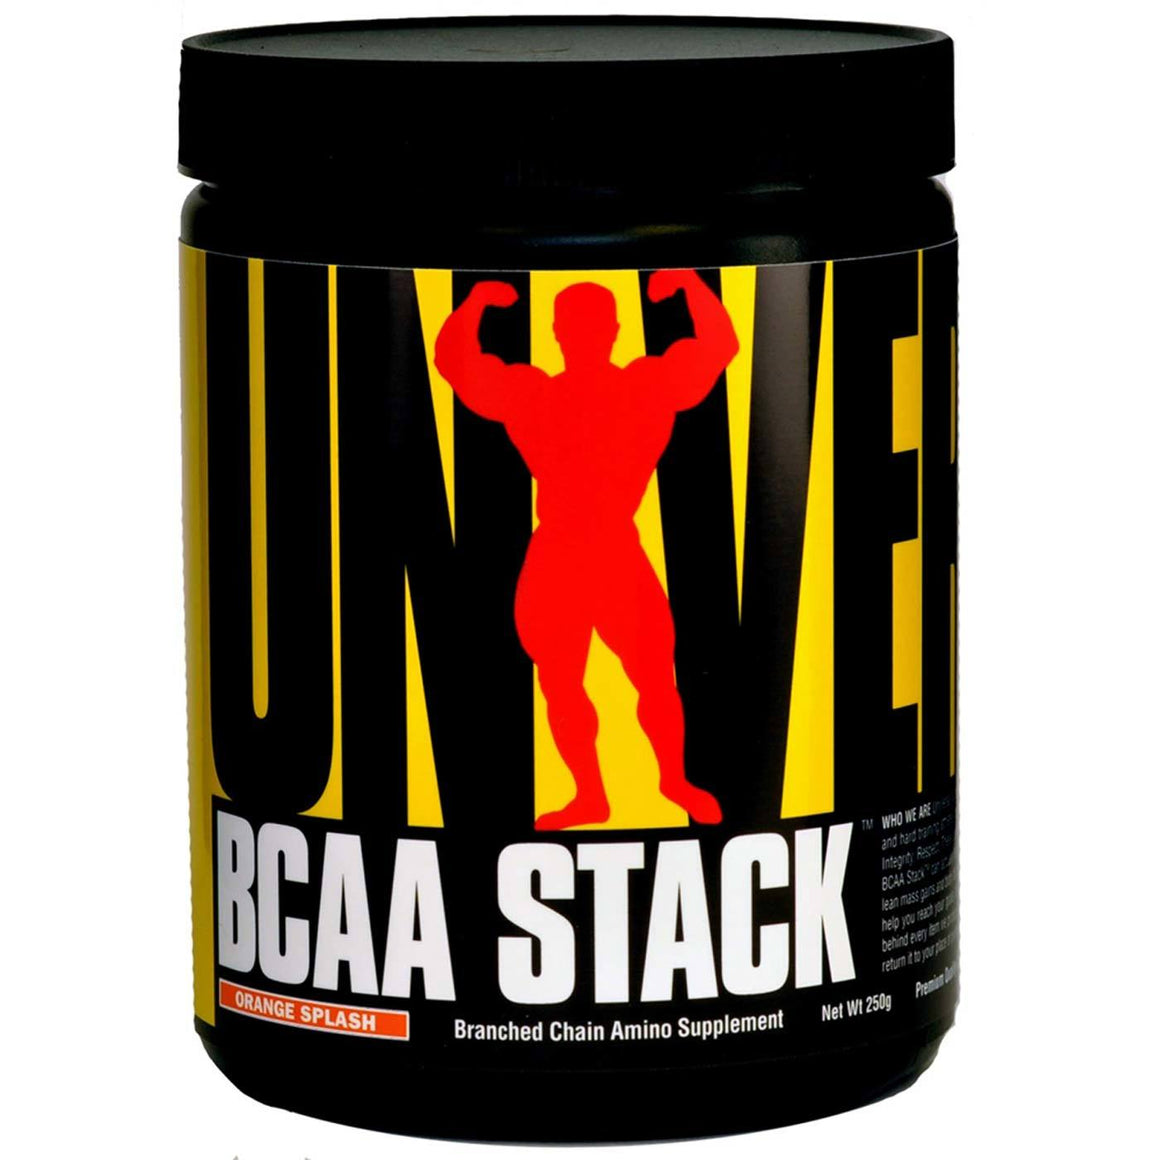 Animal / Universal Nutrition BCAA Stack, 1000g - 100 Servings